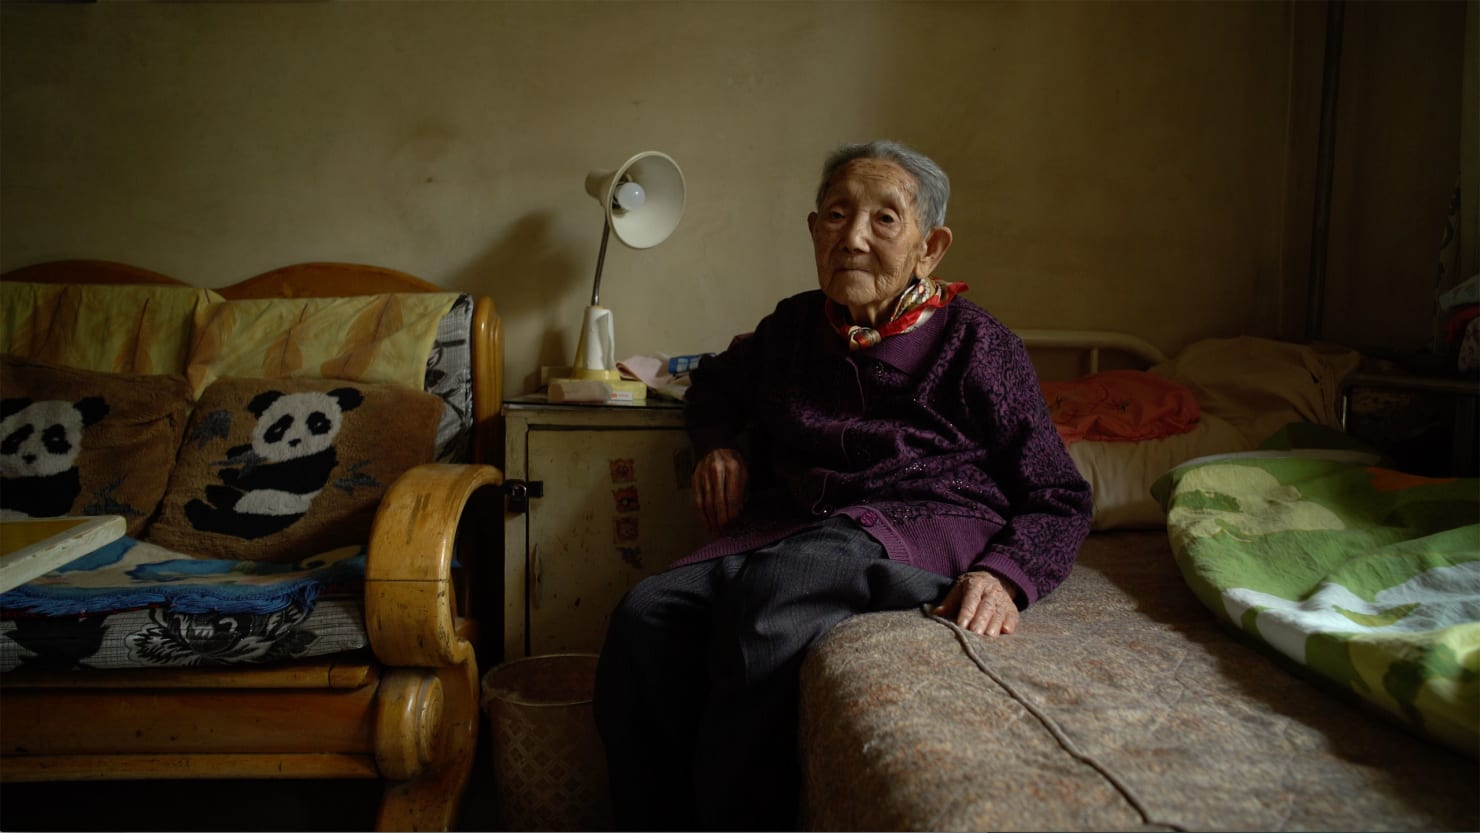 Cannibalism, Torture and Death: Inside China's Genocidal Re-Education Camps